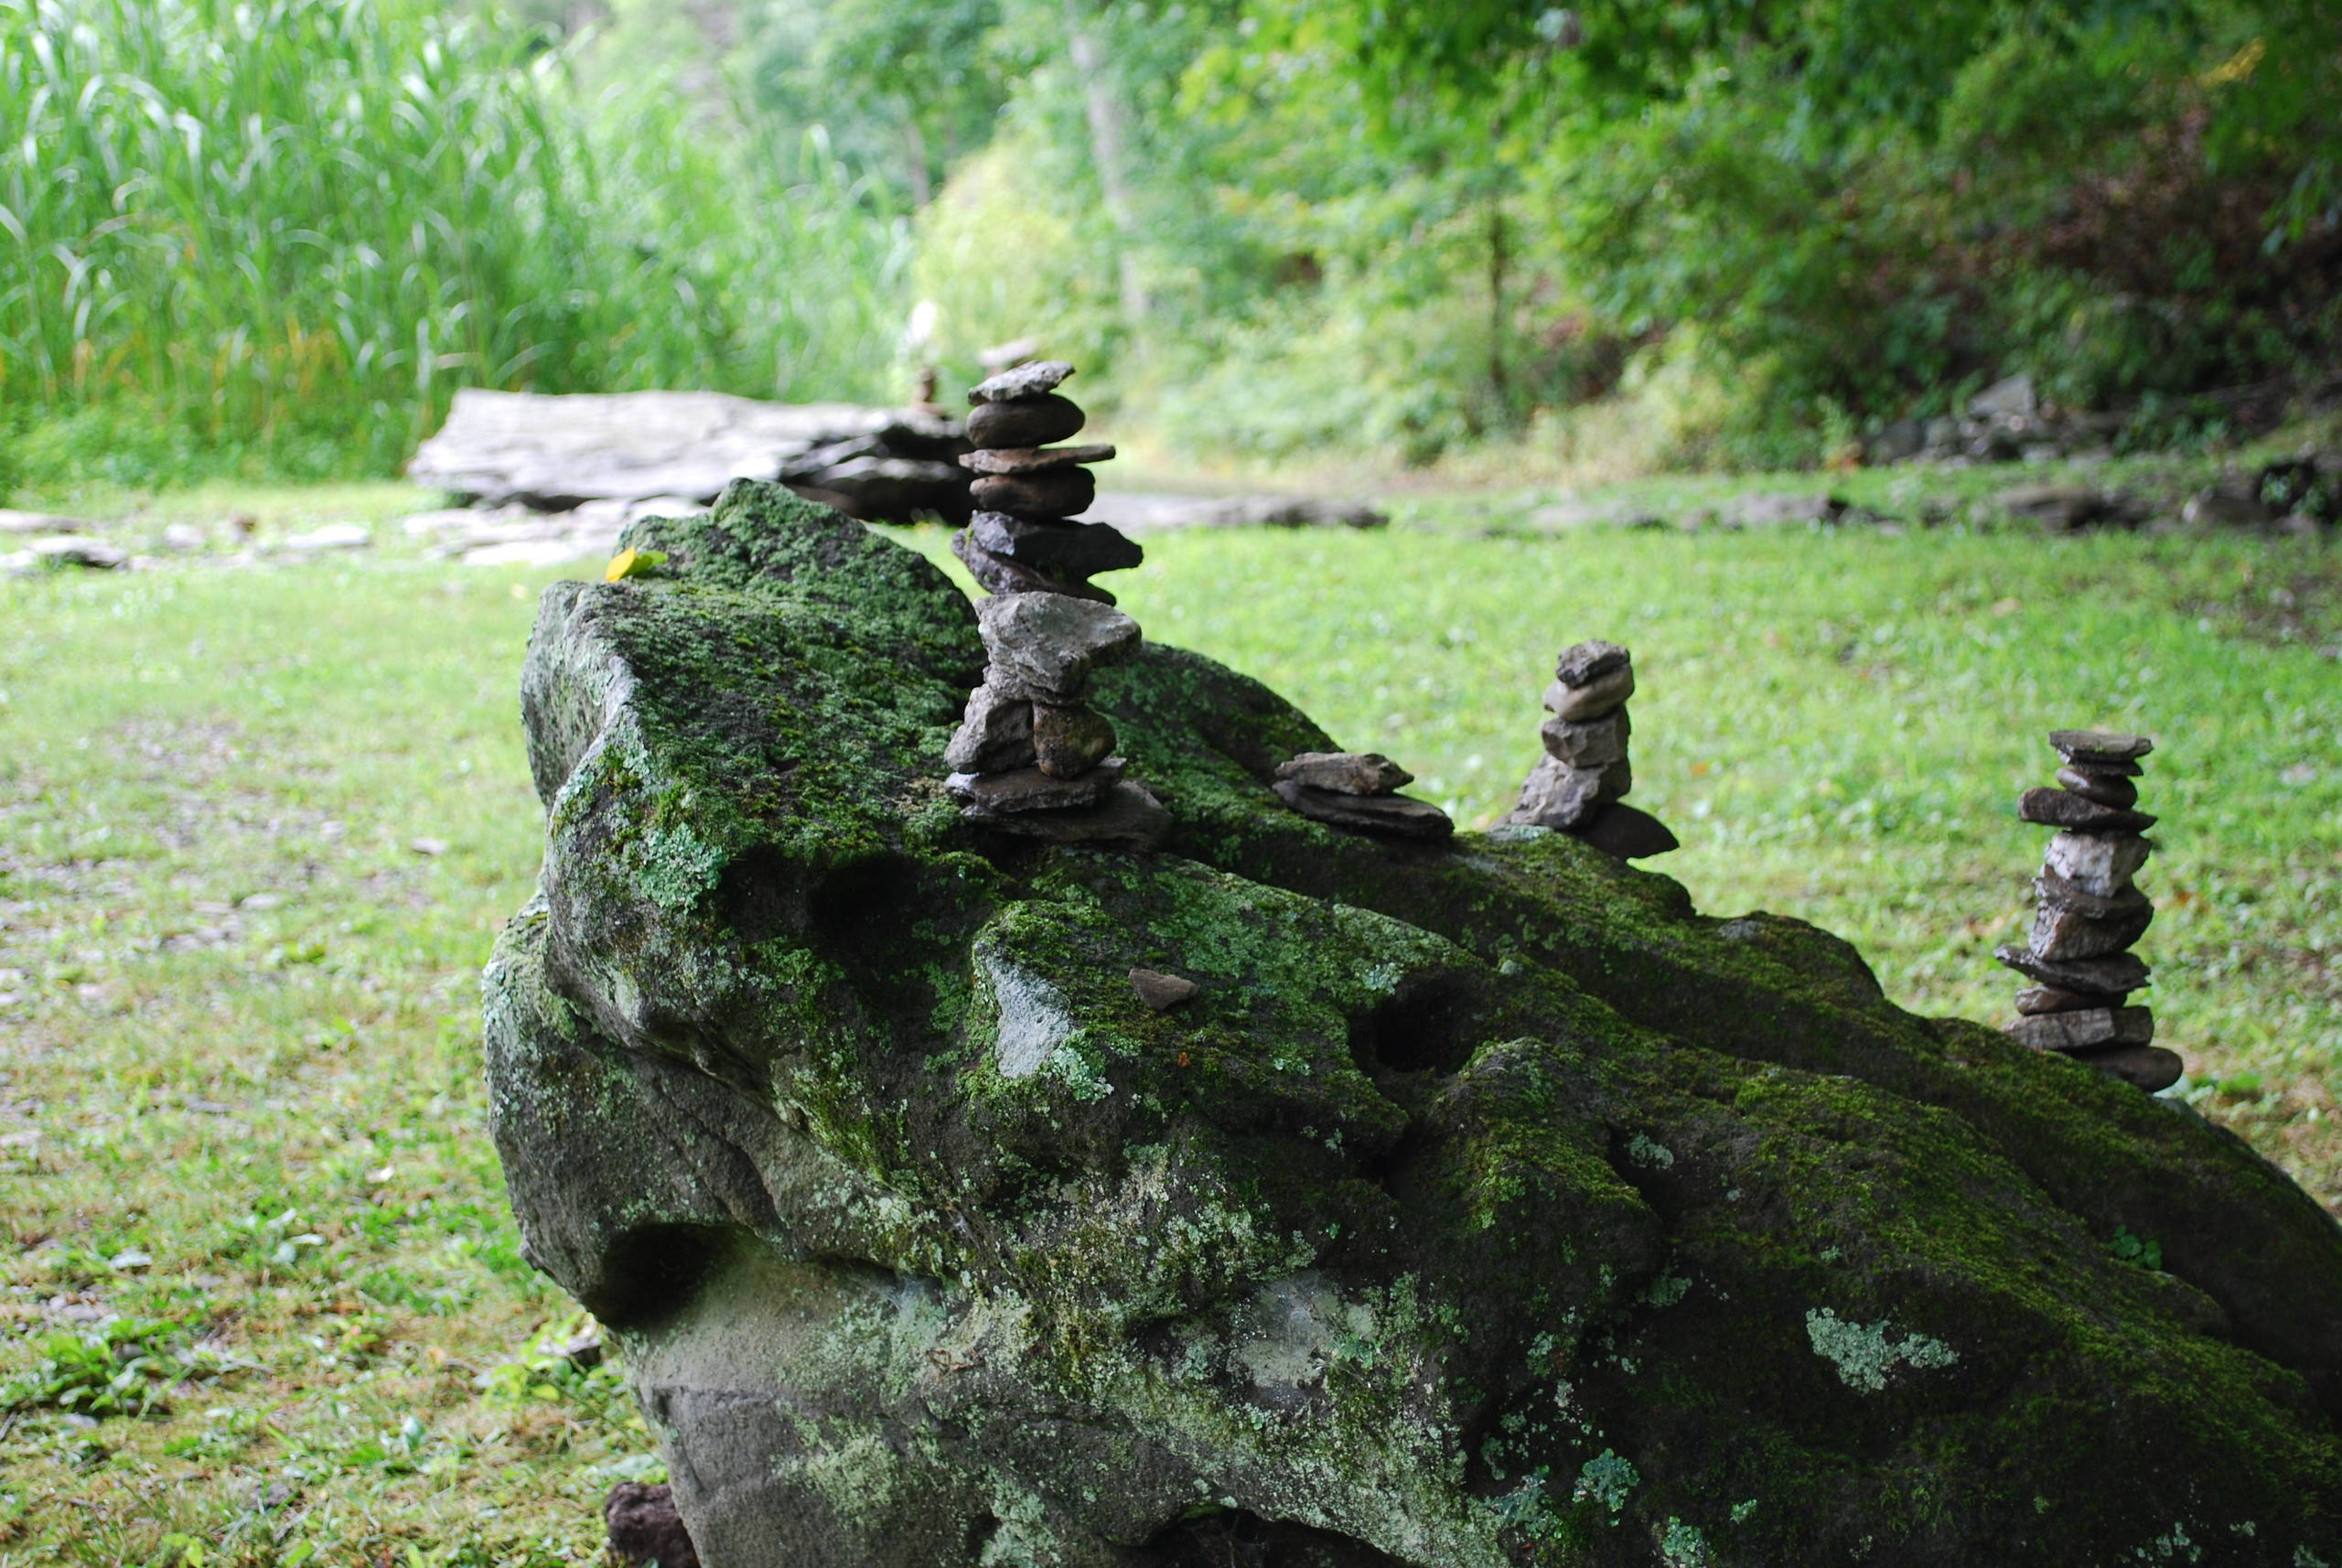 Meditative stone stacking on boulder.